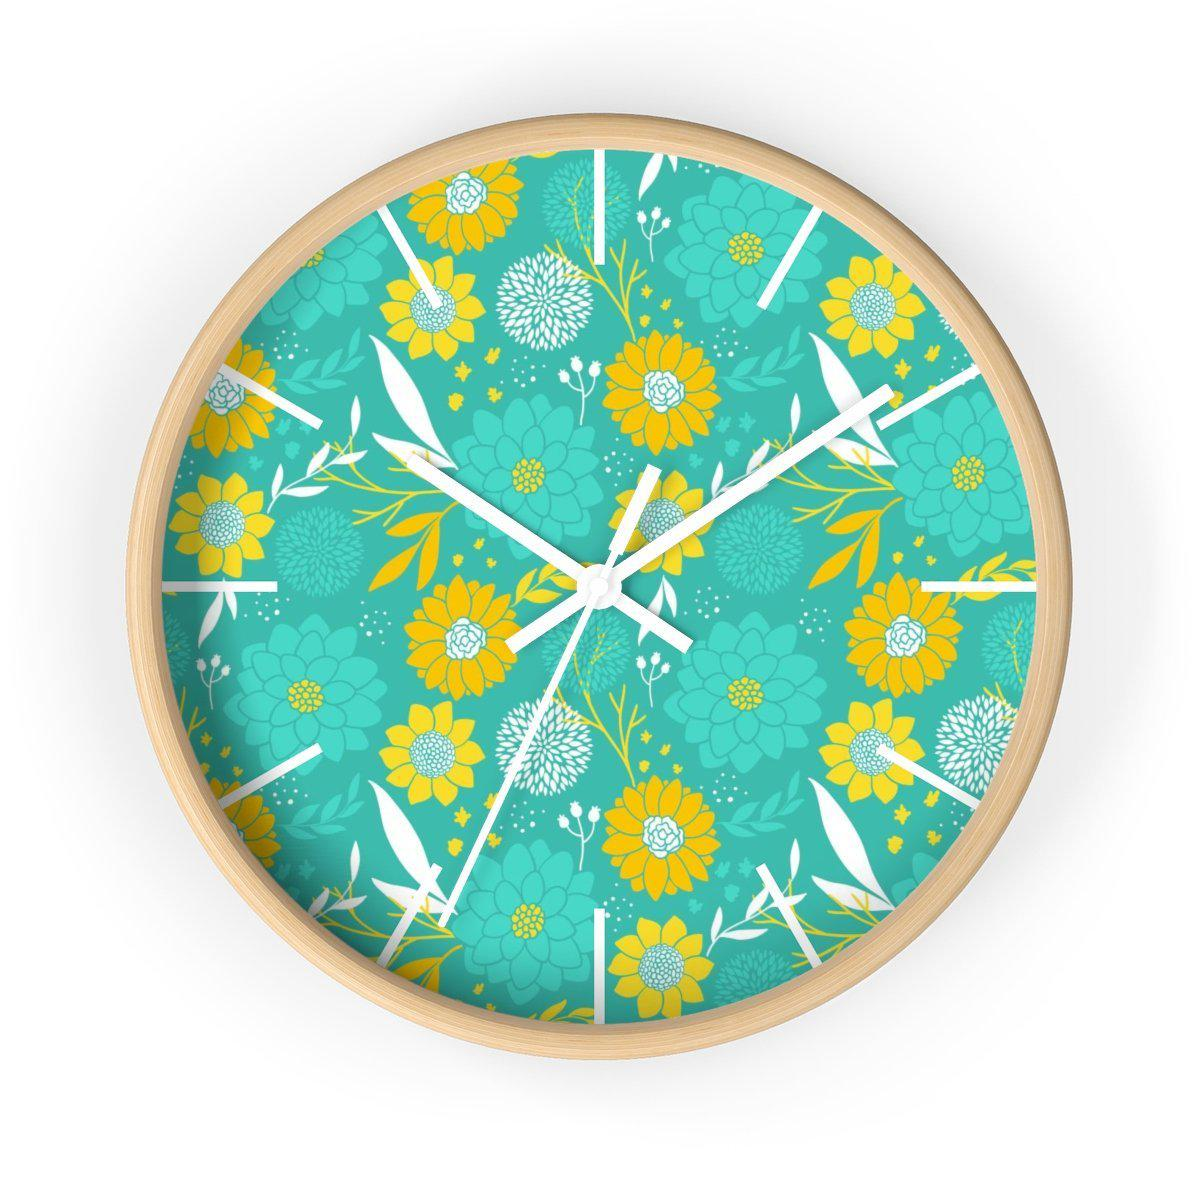 Maison d'Elite Floral Wall clock-Home Décor › Accents › Wall Decor › Clocks & Sculptures-Maison d'Elite-Wooden-White-Très Elite